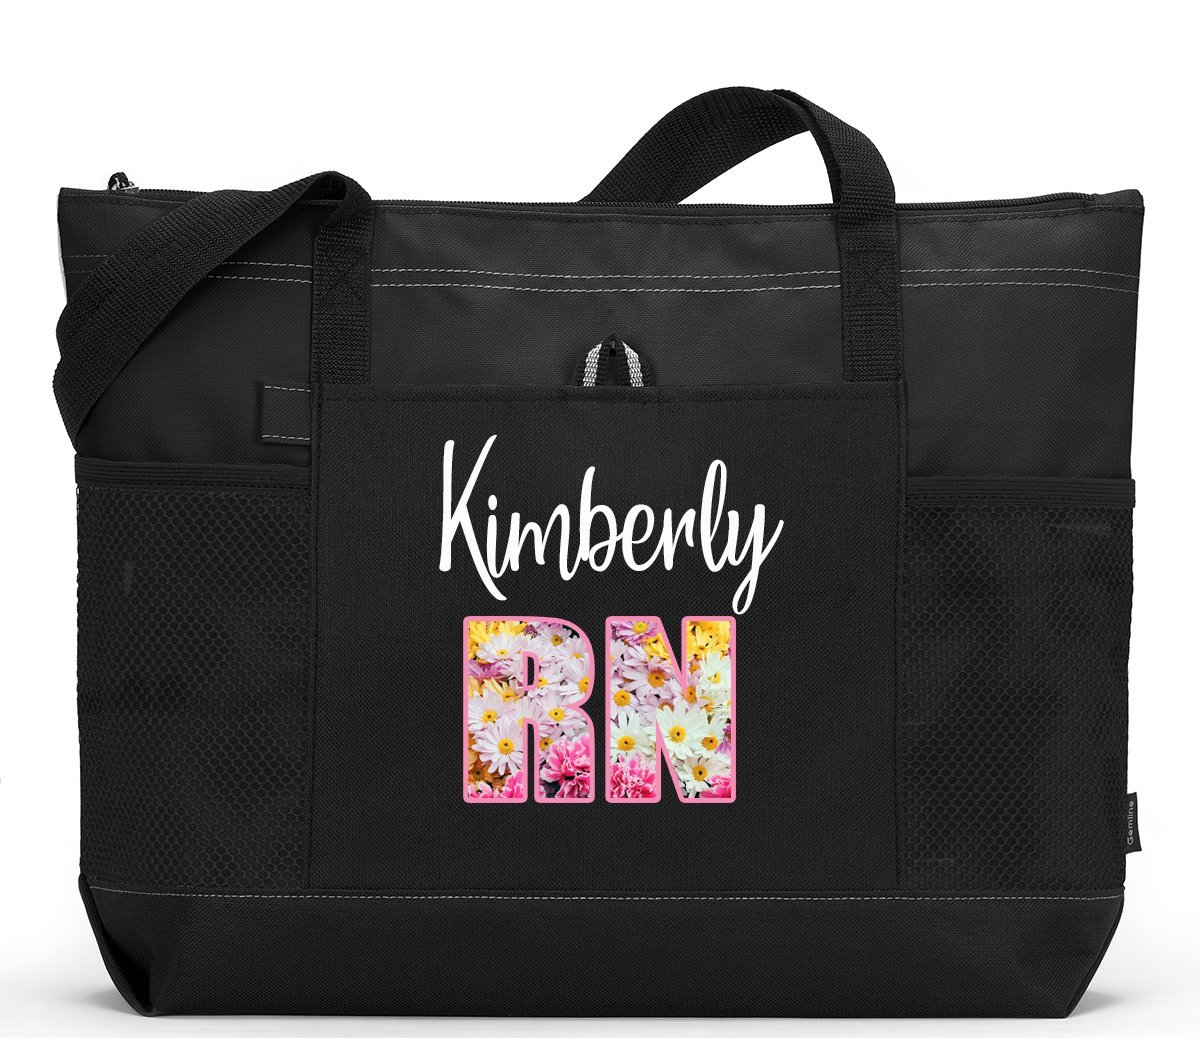 Personalized Nurse RN LPN CNA CMA Tote Bag with Mesh Pockets